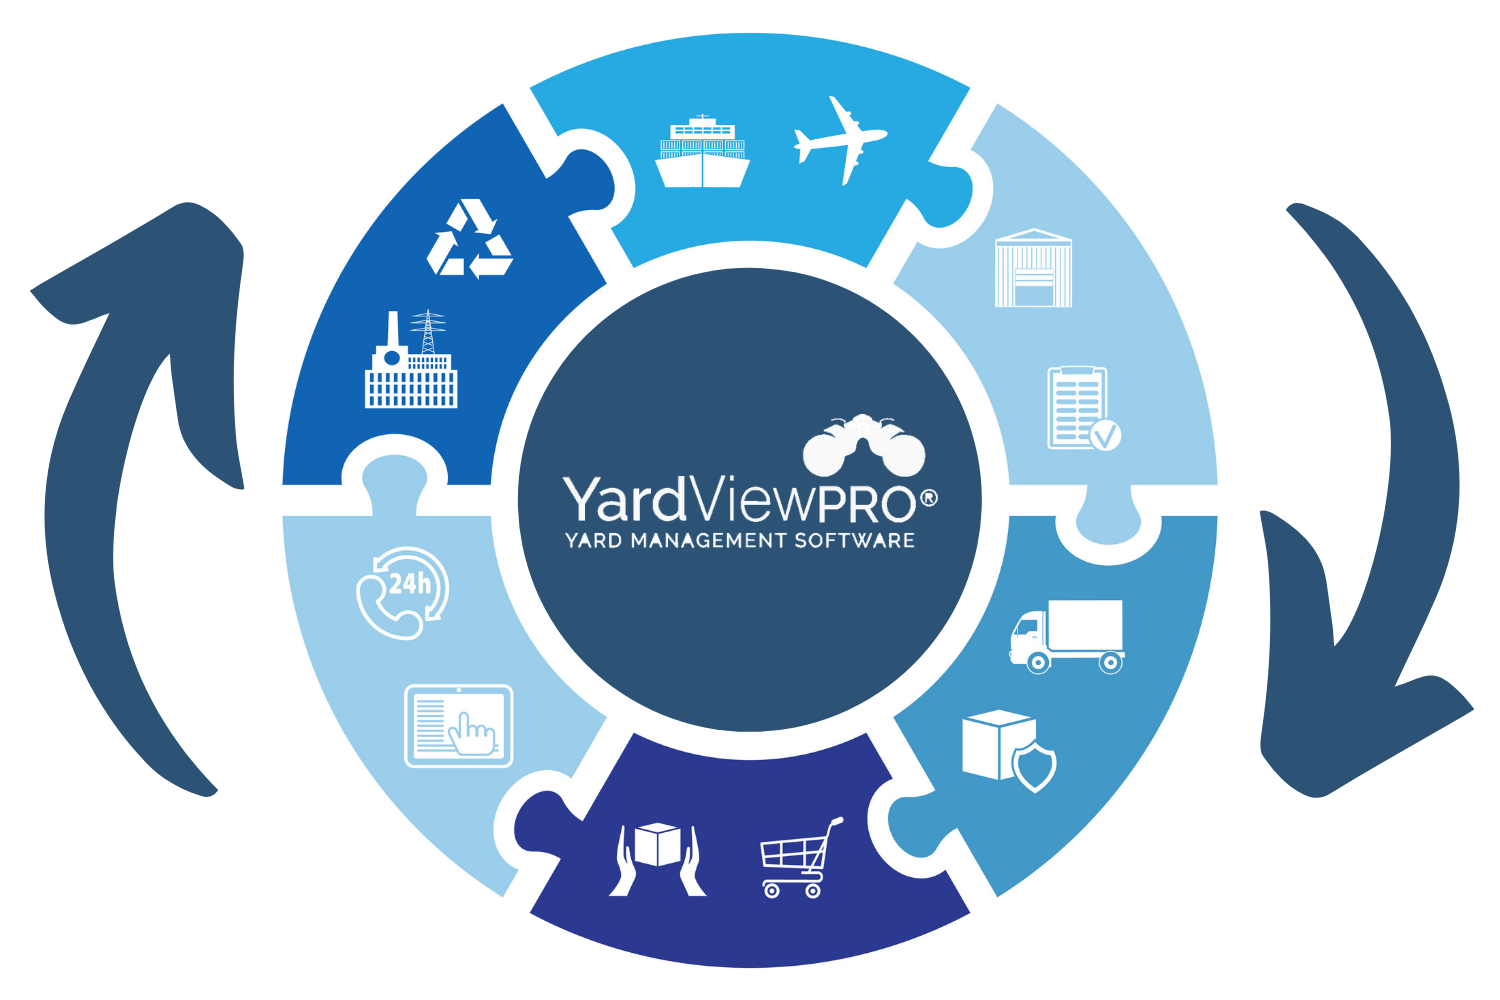 Illustration of a circluar image depicting puzzle pieces of the supply chain connected by the YardView yard management software system